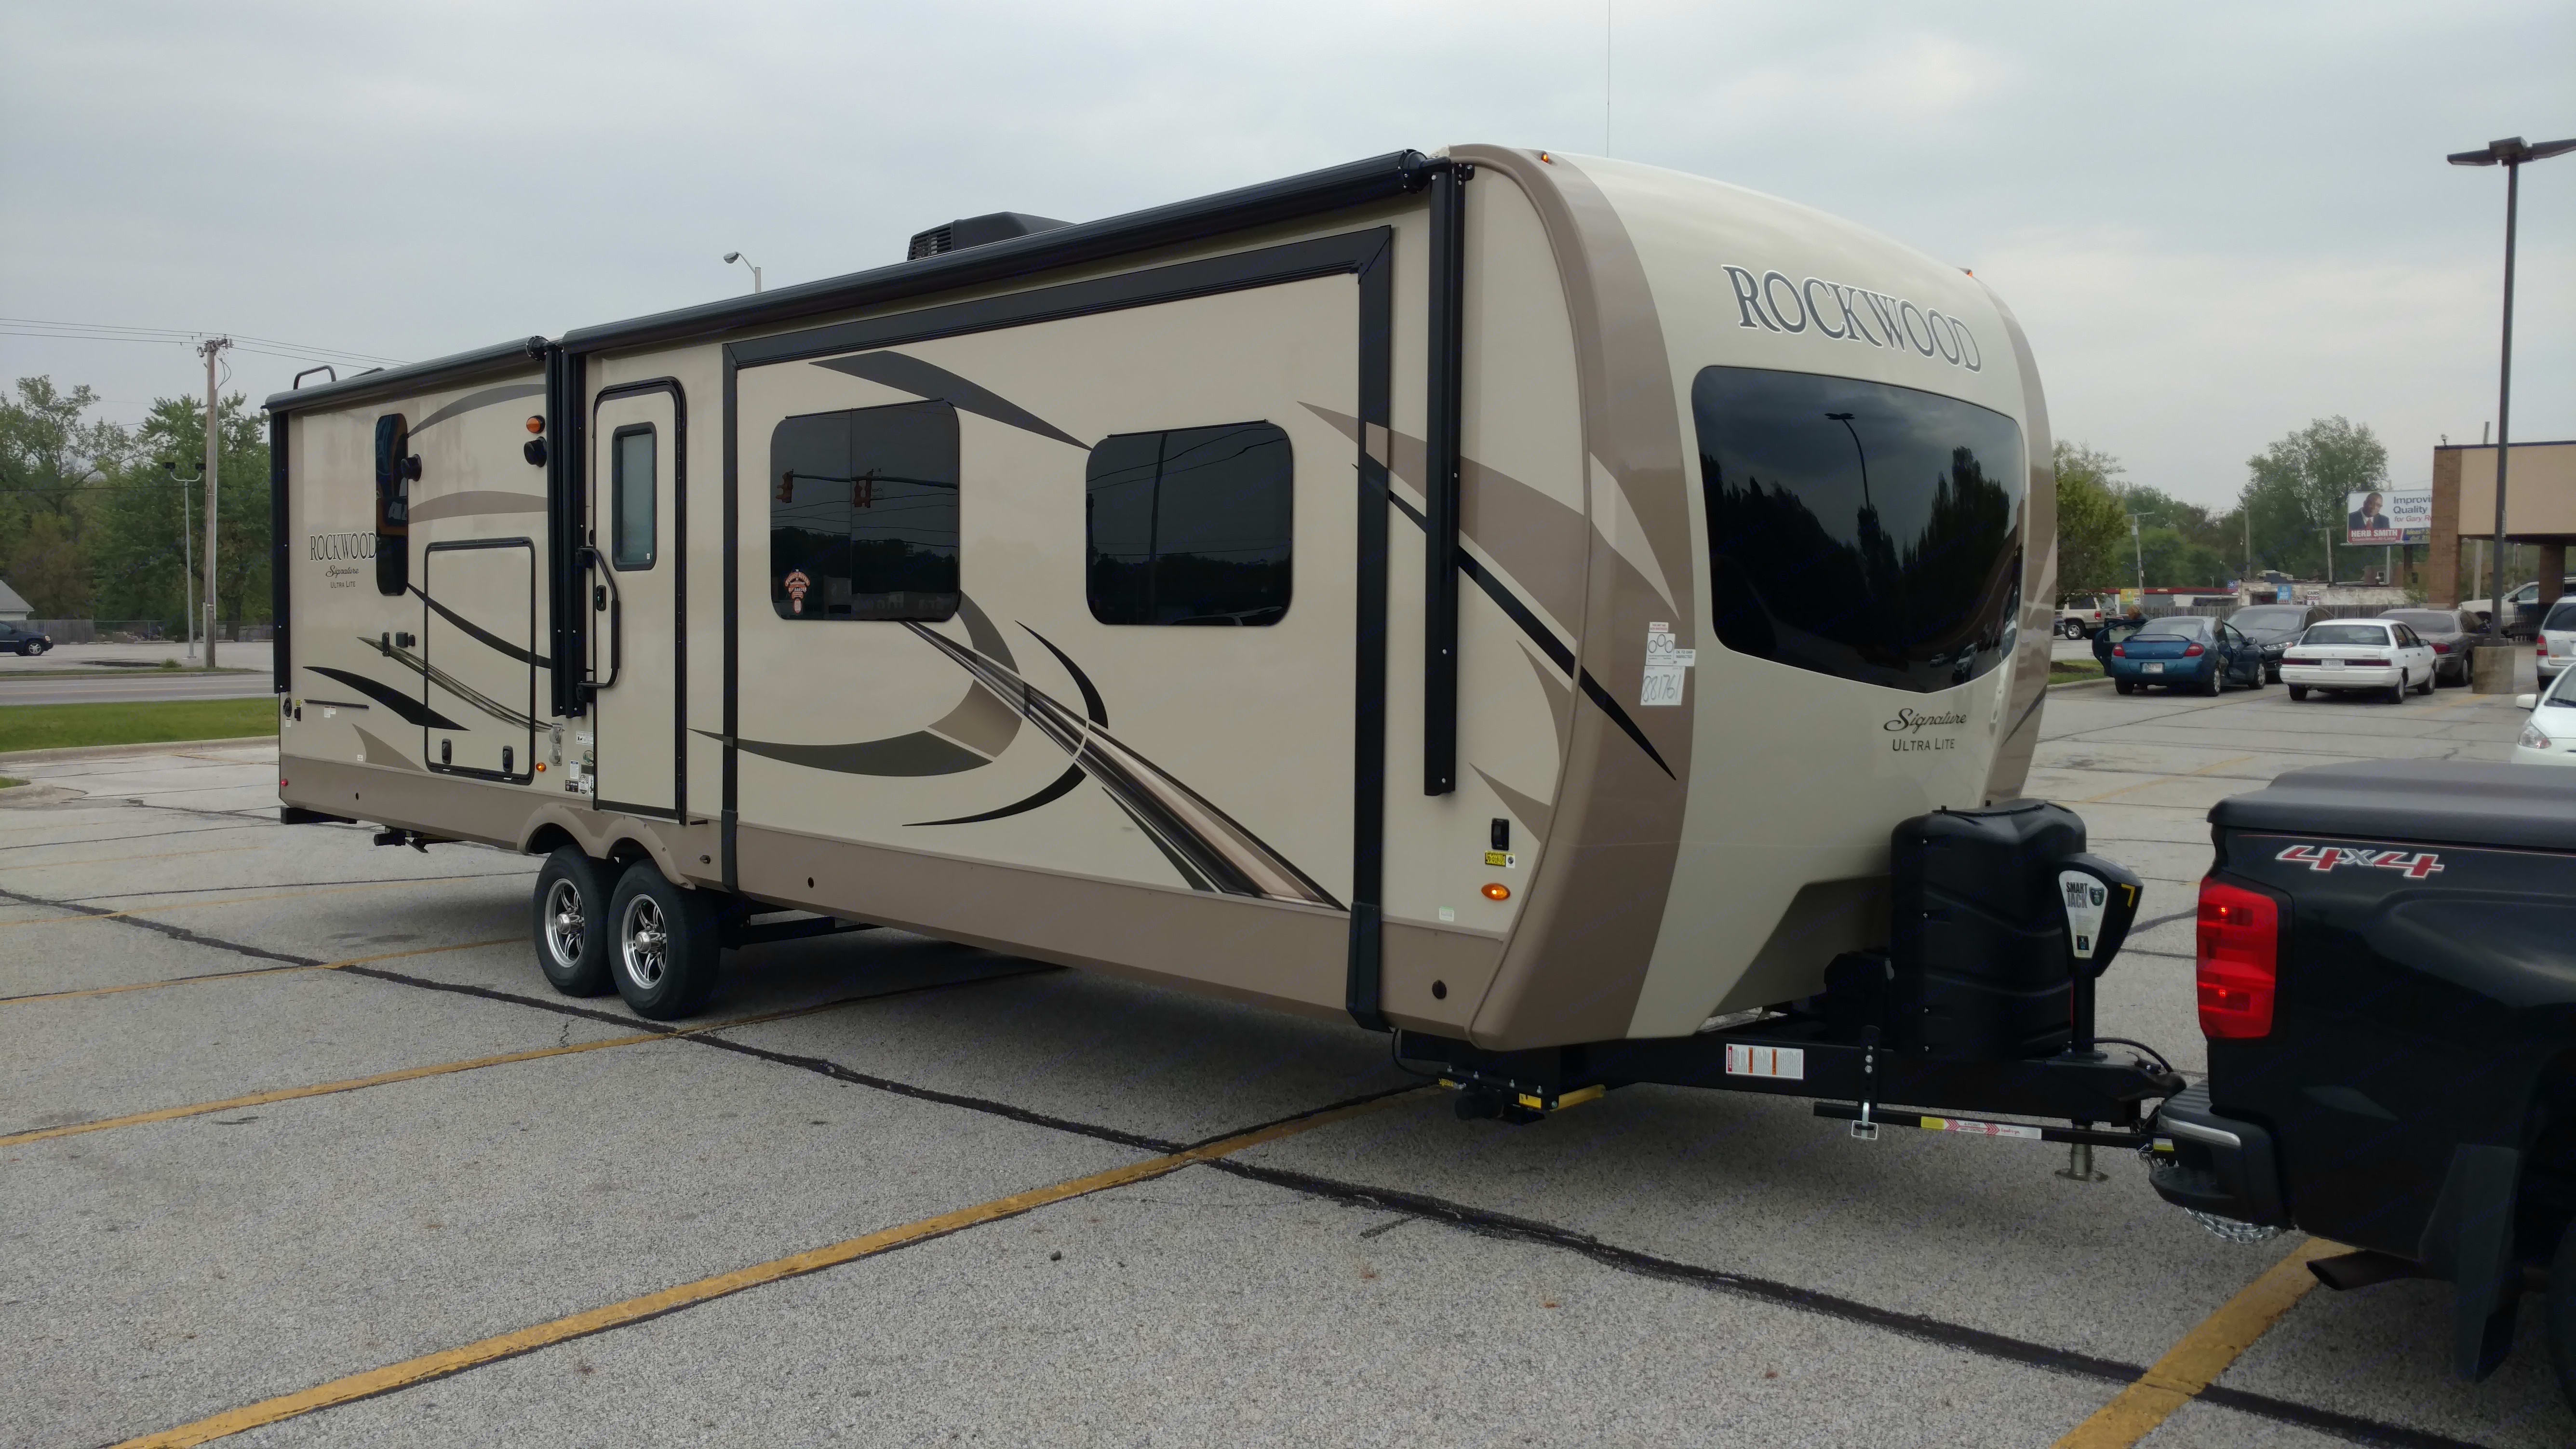 RT side showing the one slide and two awnings and out side kitchen. Forest River Rockwood Signature Ultra 2019